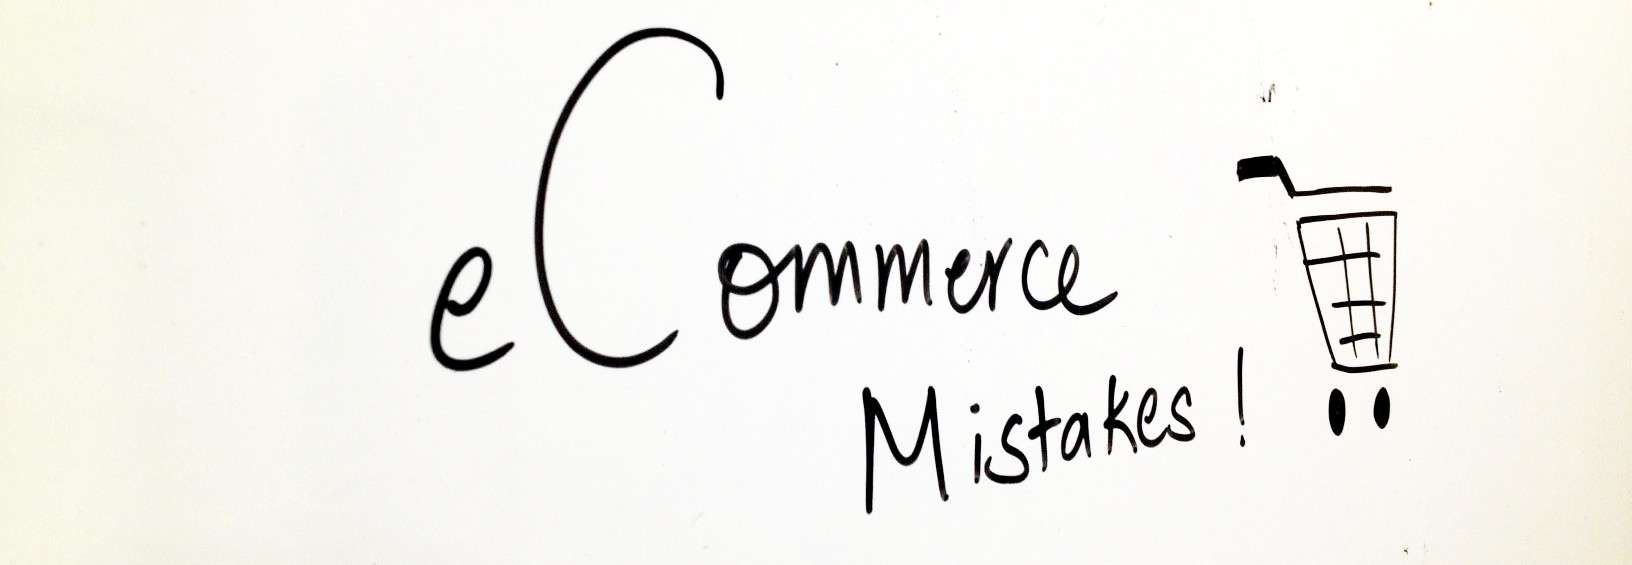 Image result for Ecommerce Mistakes